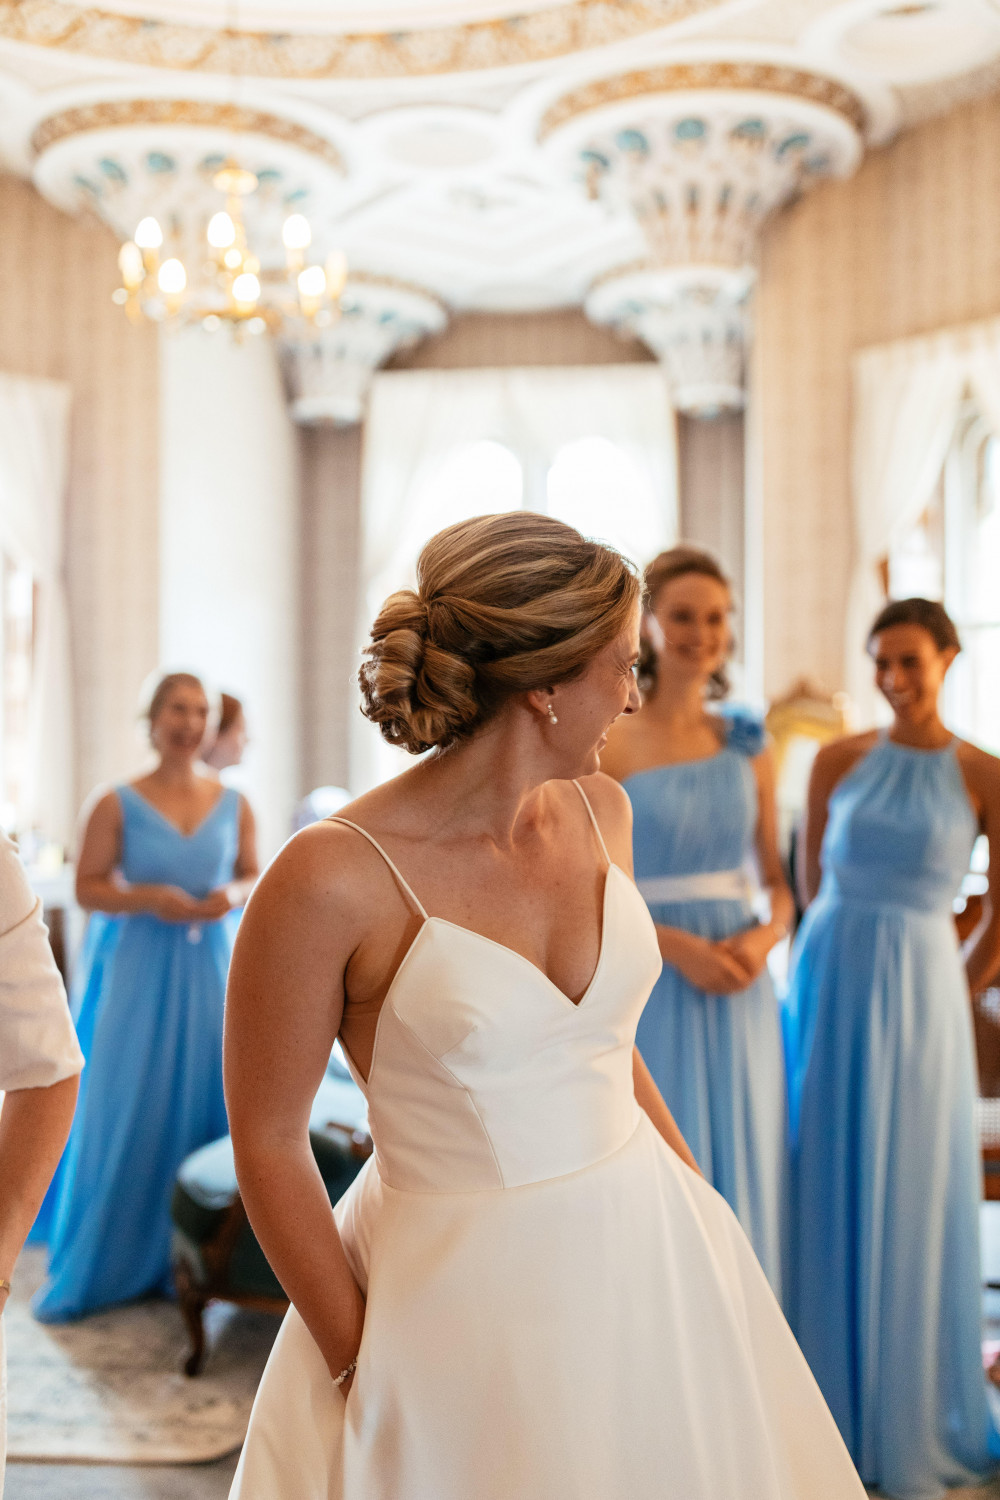 A beautiful bride at her Rhinefield House wedding, with a delicate traditional Chignon bun, perfect for incorporating her chosen veil! - Make Me Bridal Artist: Bridal Hair in Hampshire. Photography by: Suzy Wimbourne. #classic #vintage #romantic #chignon